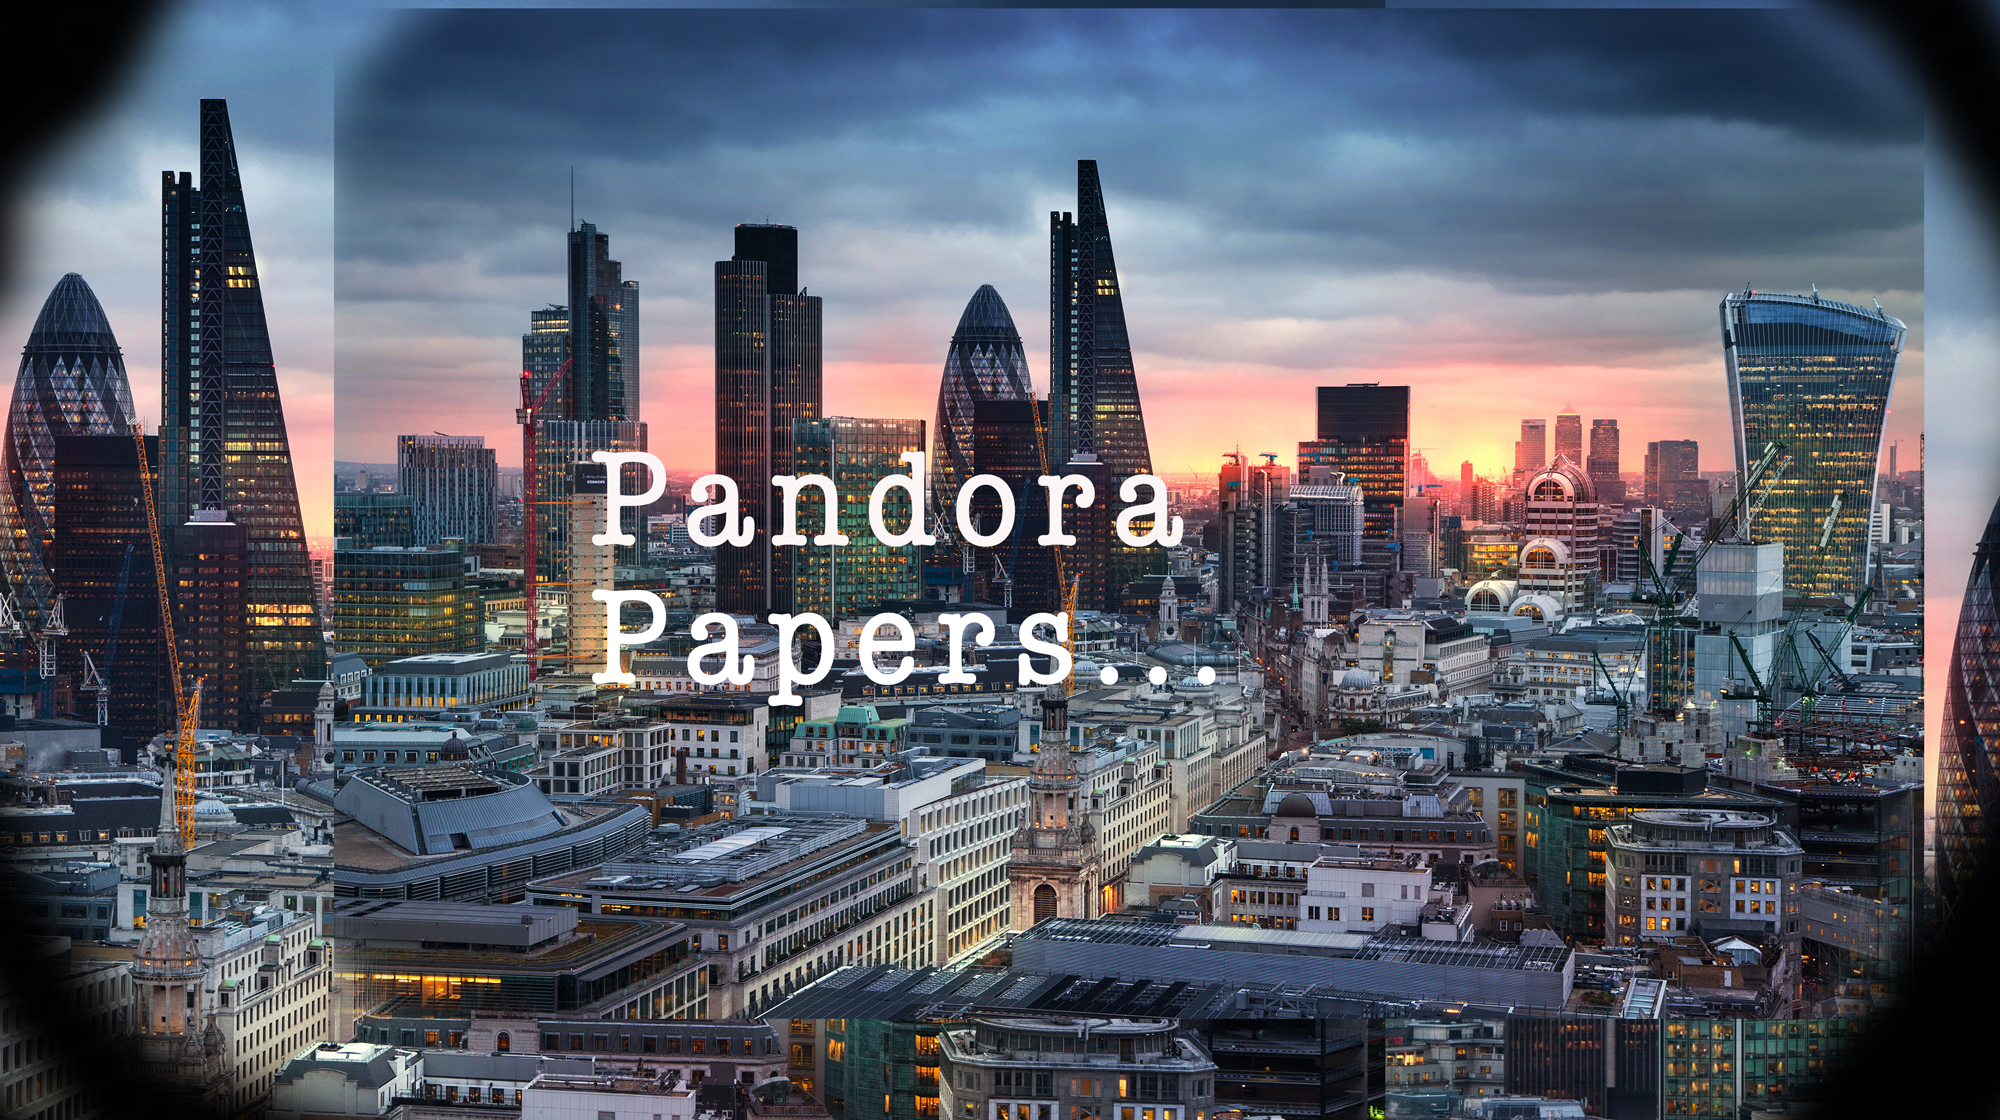 US Denounced as 'Biggest Peddler of Financial Secrecy' After Pandora Papers Leak